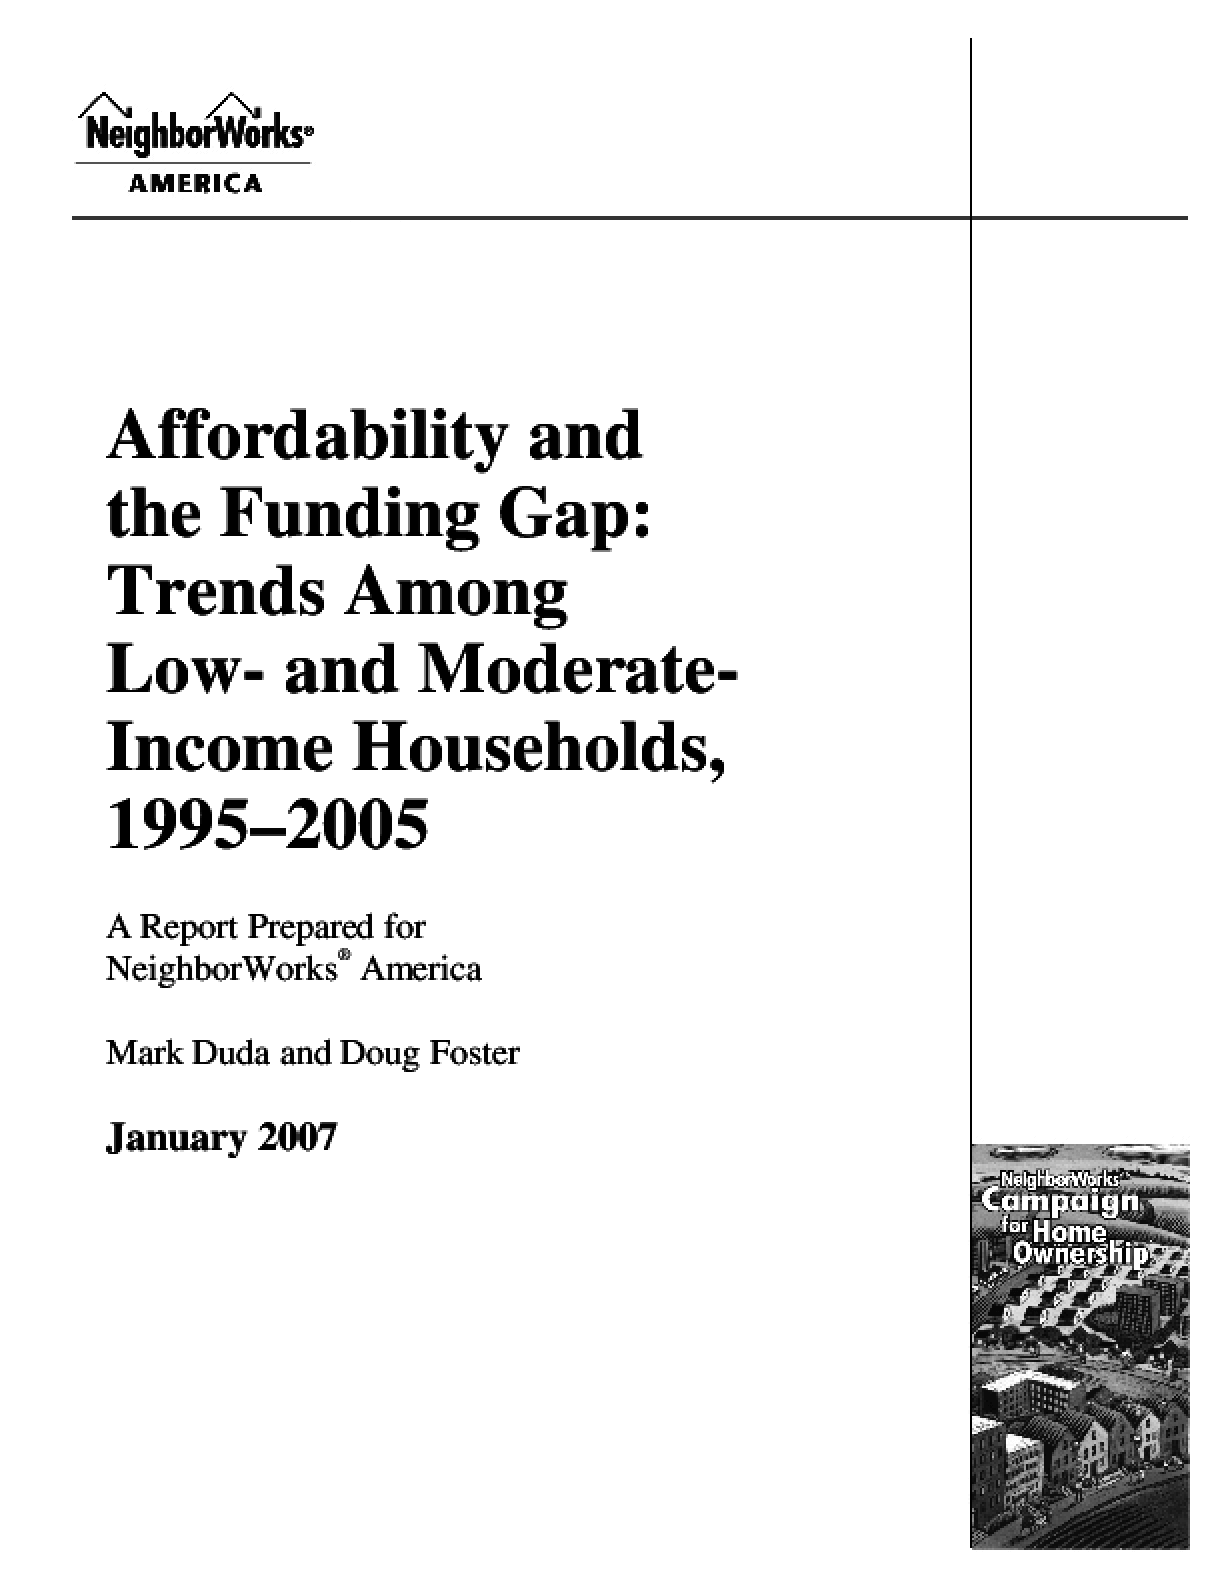 Affordability and the Funding Gap Trends among Low-and Moderate-Income Households, 1995-2005